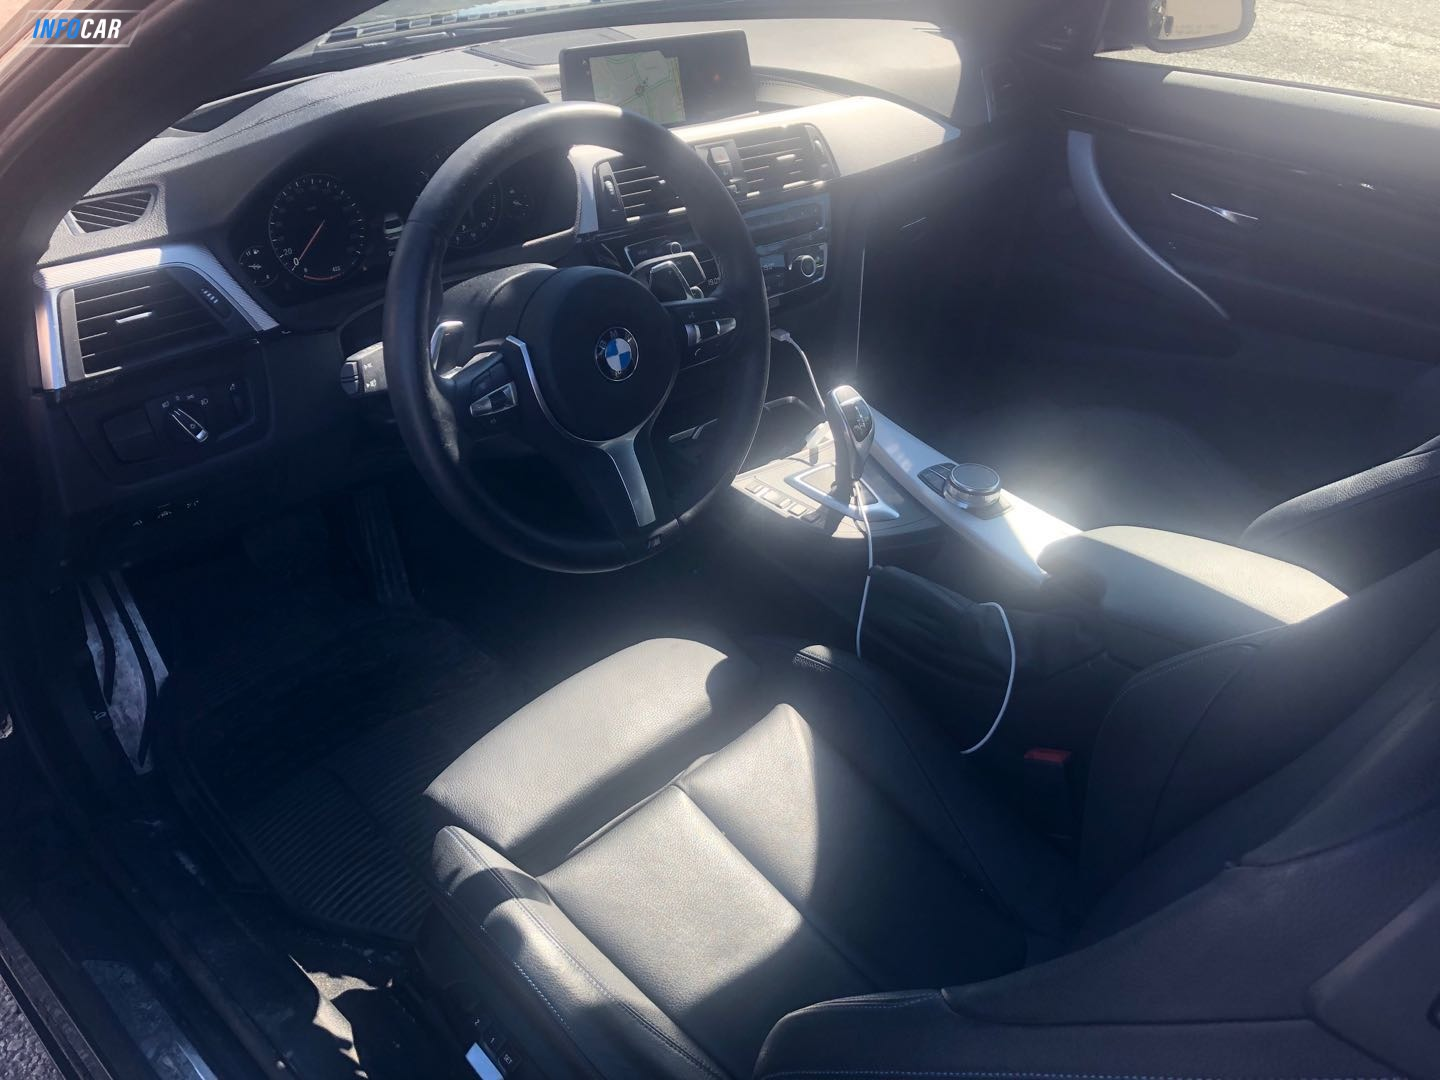 2019 BMW 4-Series 440i M package - INFOCAR - Toronto's Most Comprehensive New and Used Auto Trading Platform